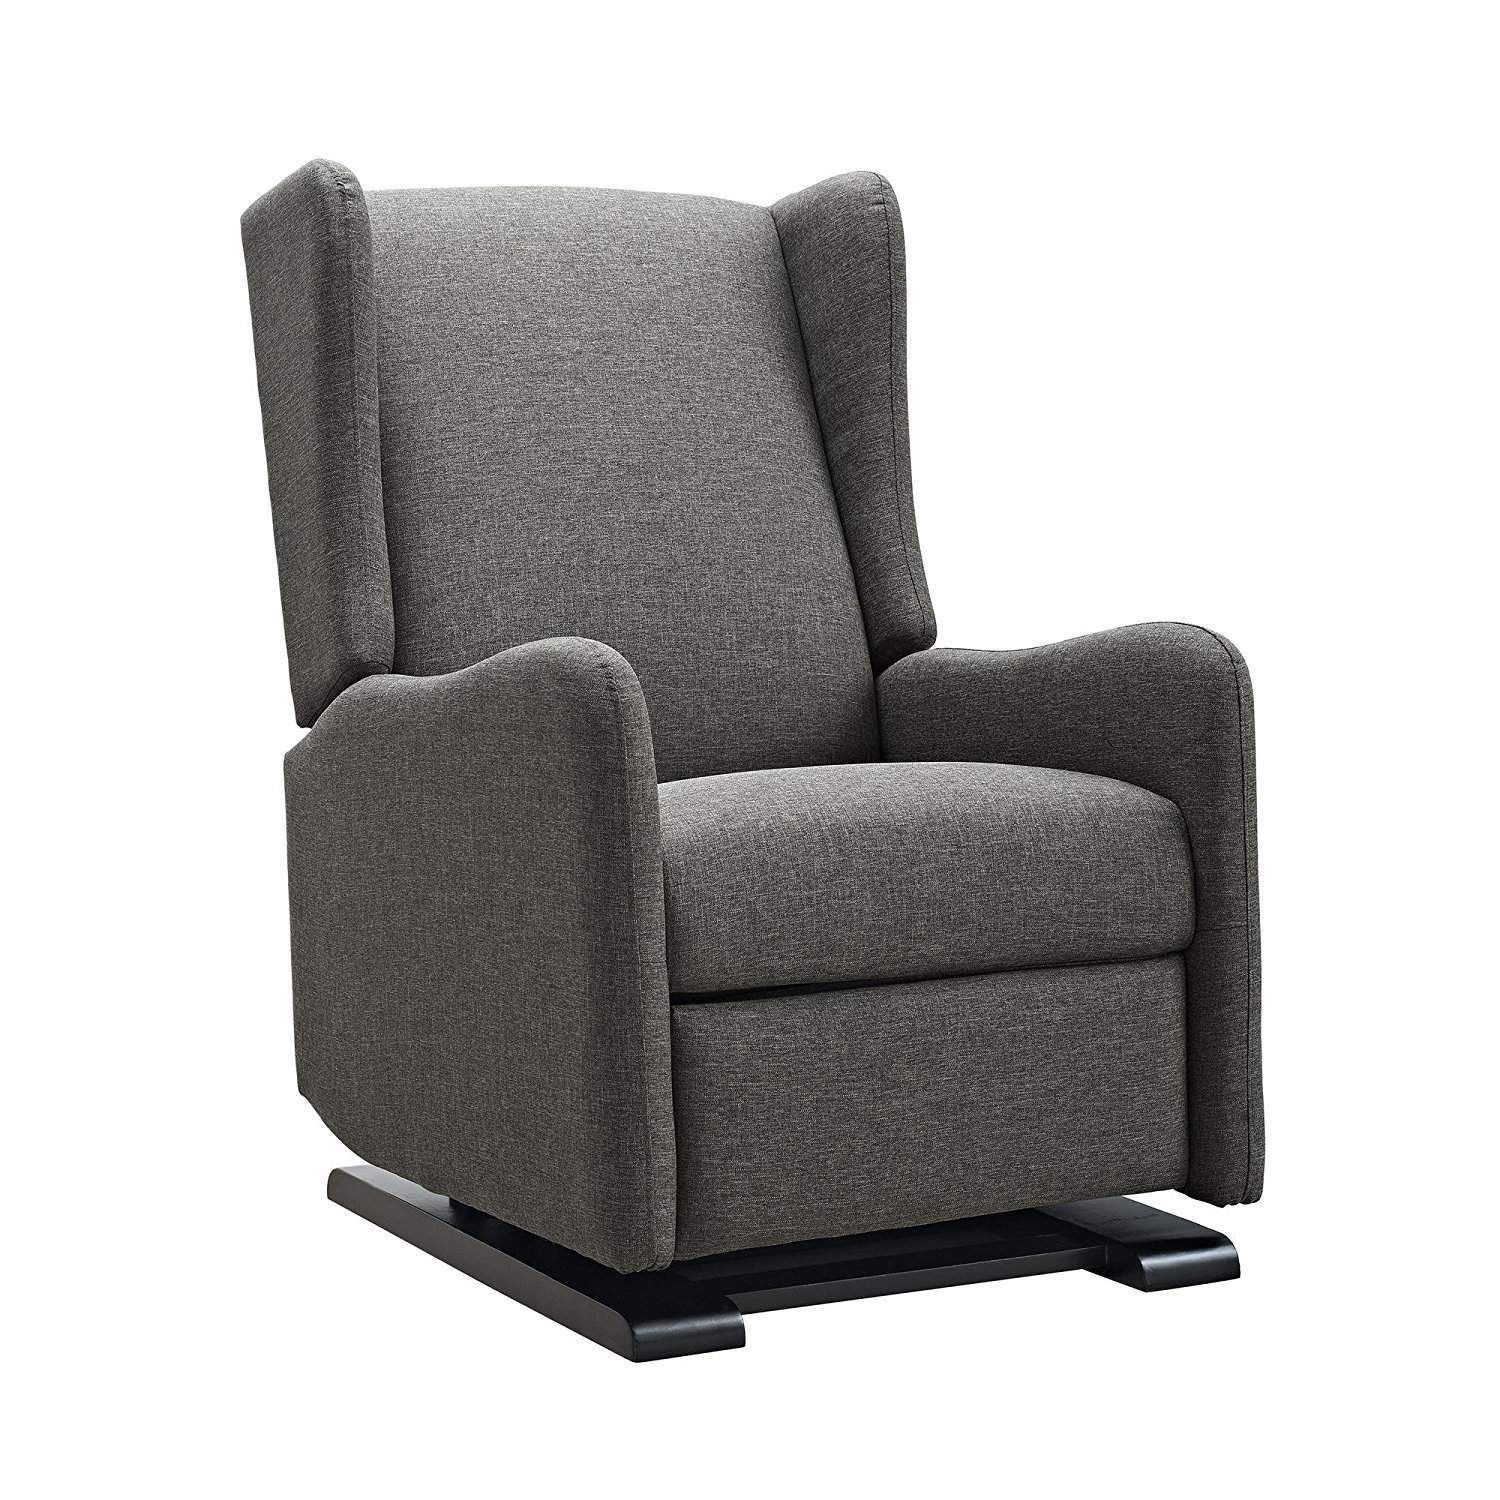 151 Reference Of Cheap Recliner Chair Singapore In 2020 Recliner Chair Glider Recliner Rocker Recliners